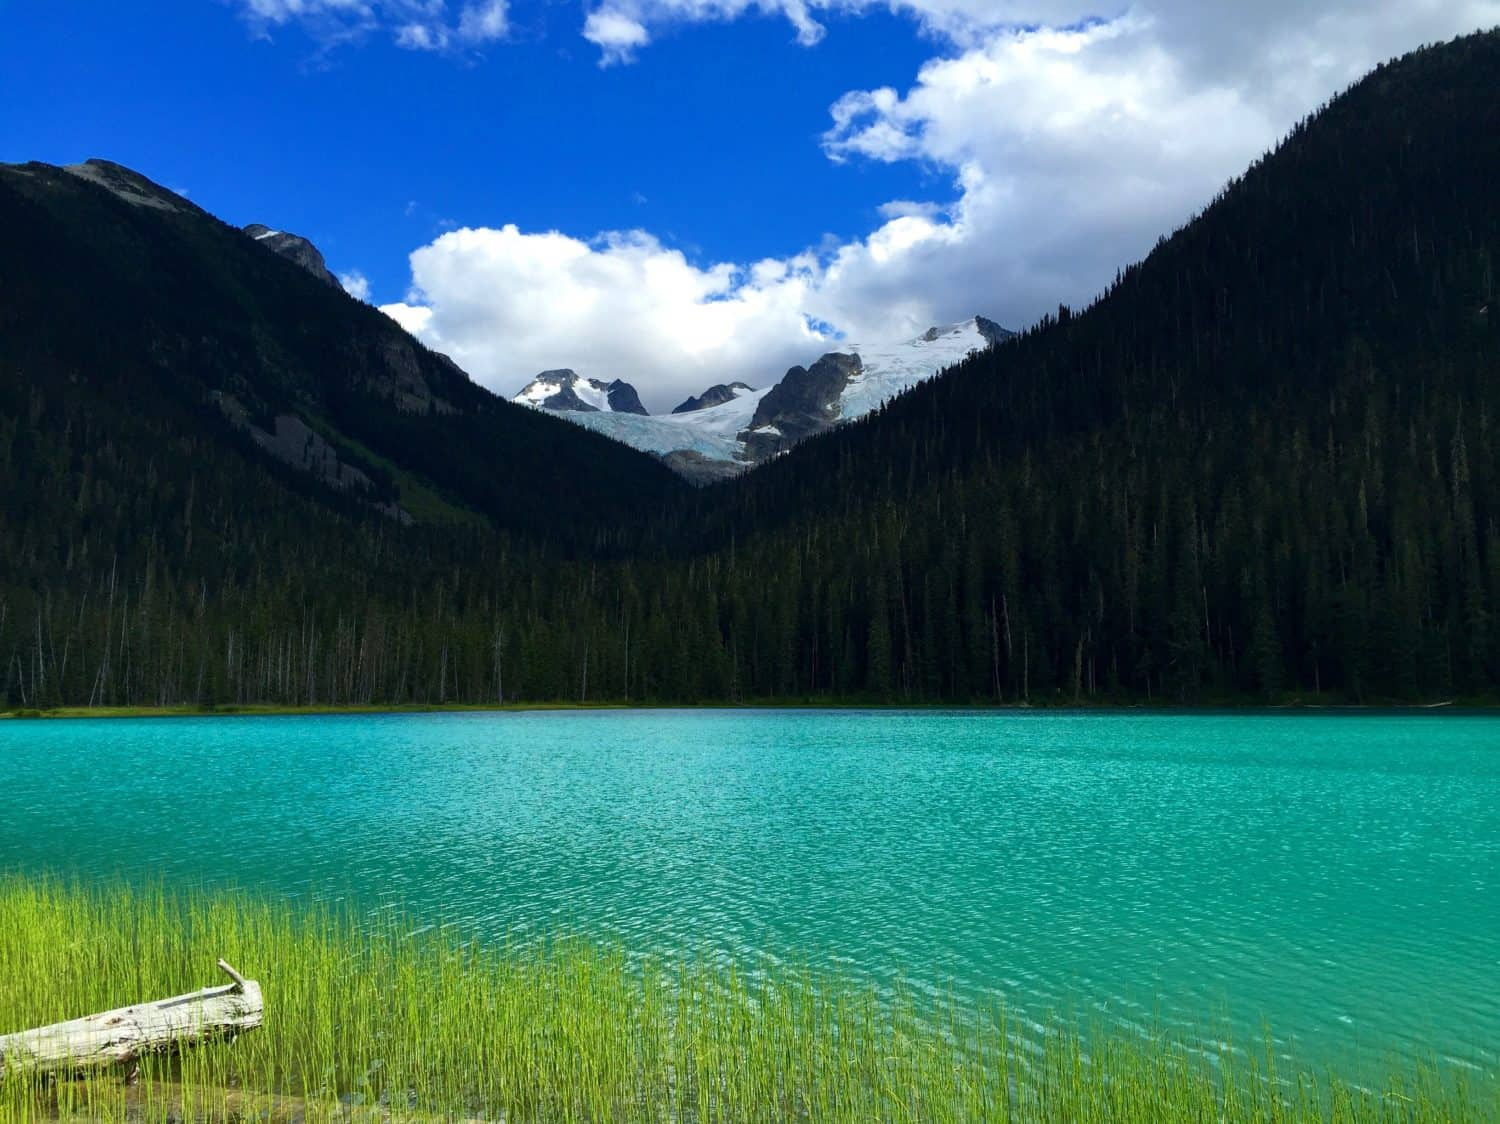 Joffre Lakes is a must-see part of any Whistler & Sea-to-Sky Highway route